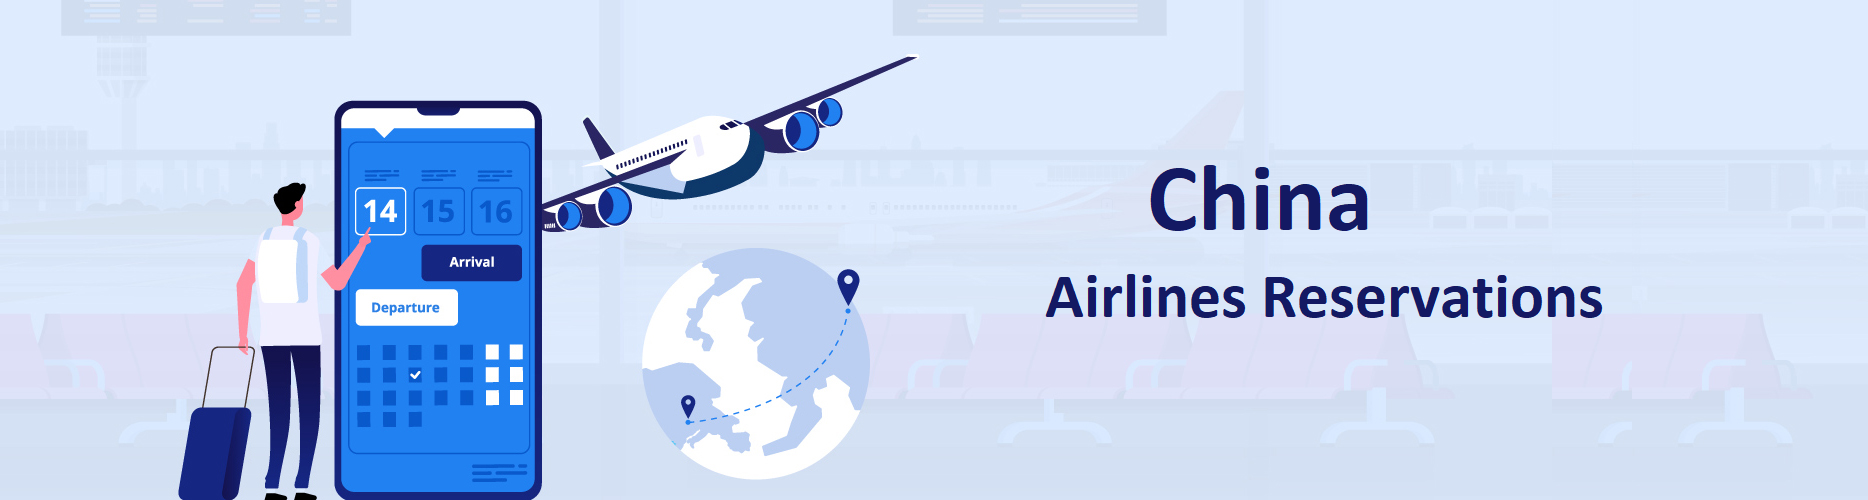 China Airlines Reservations, China Airlines Booking,